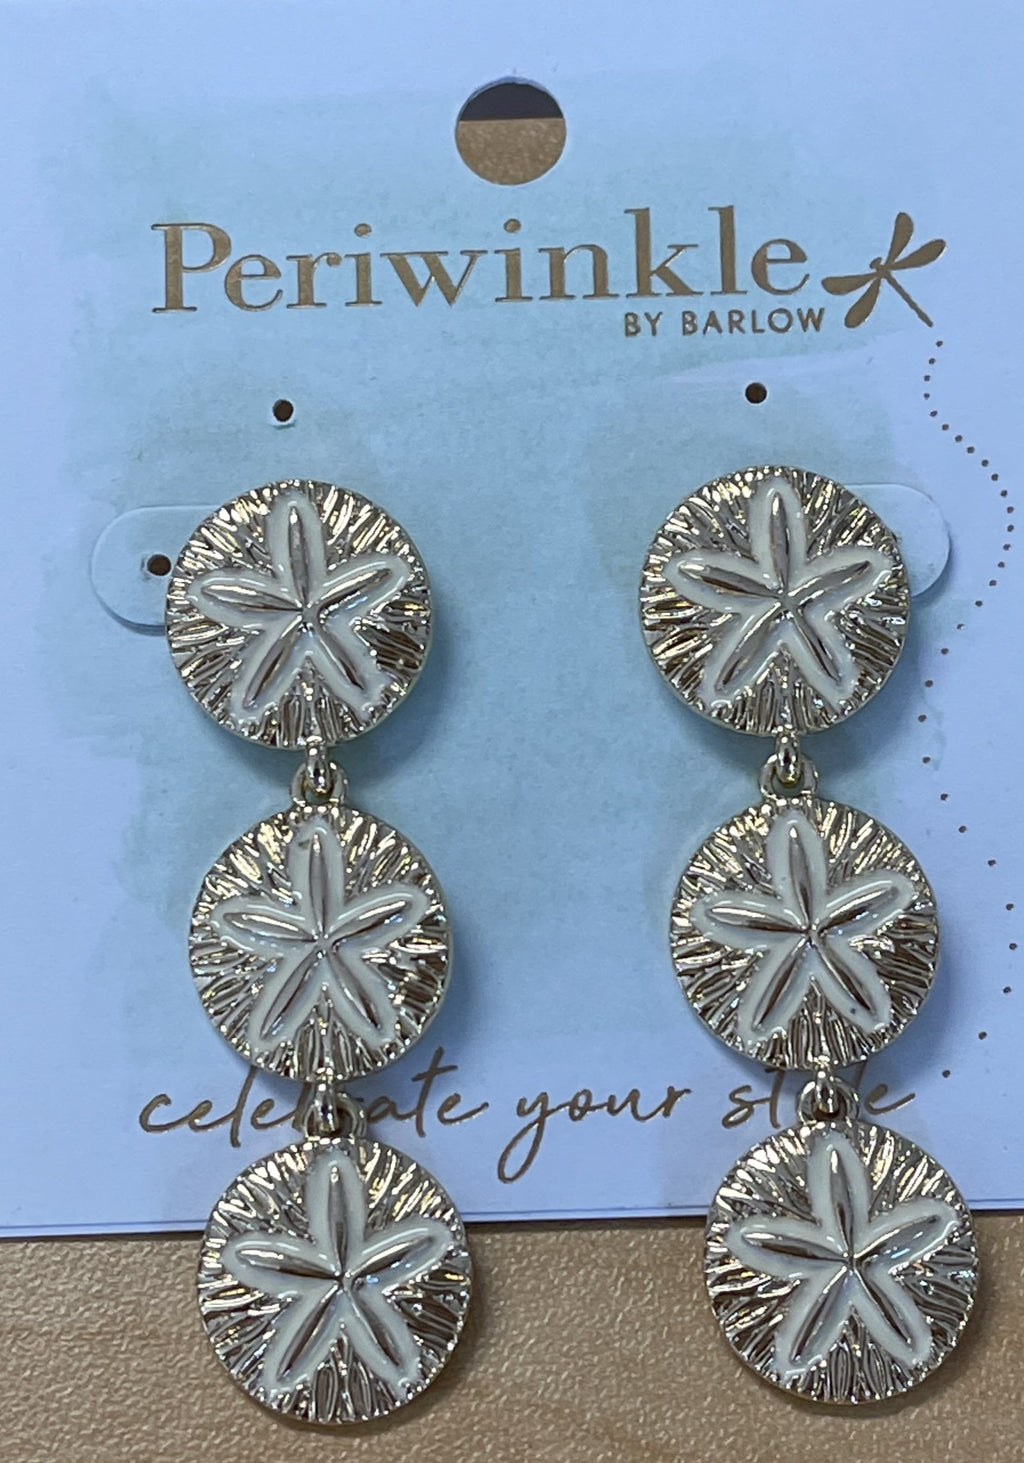 Periwinkle by Barlow Sand Dollar Earring